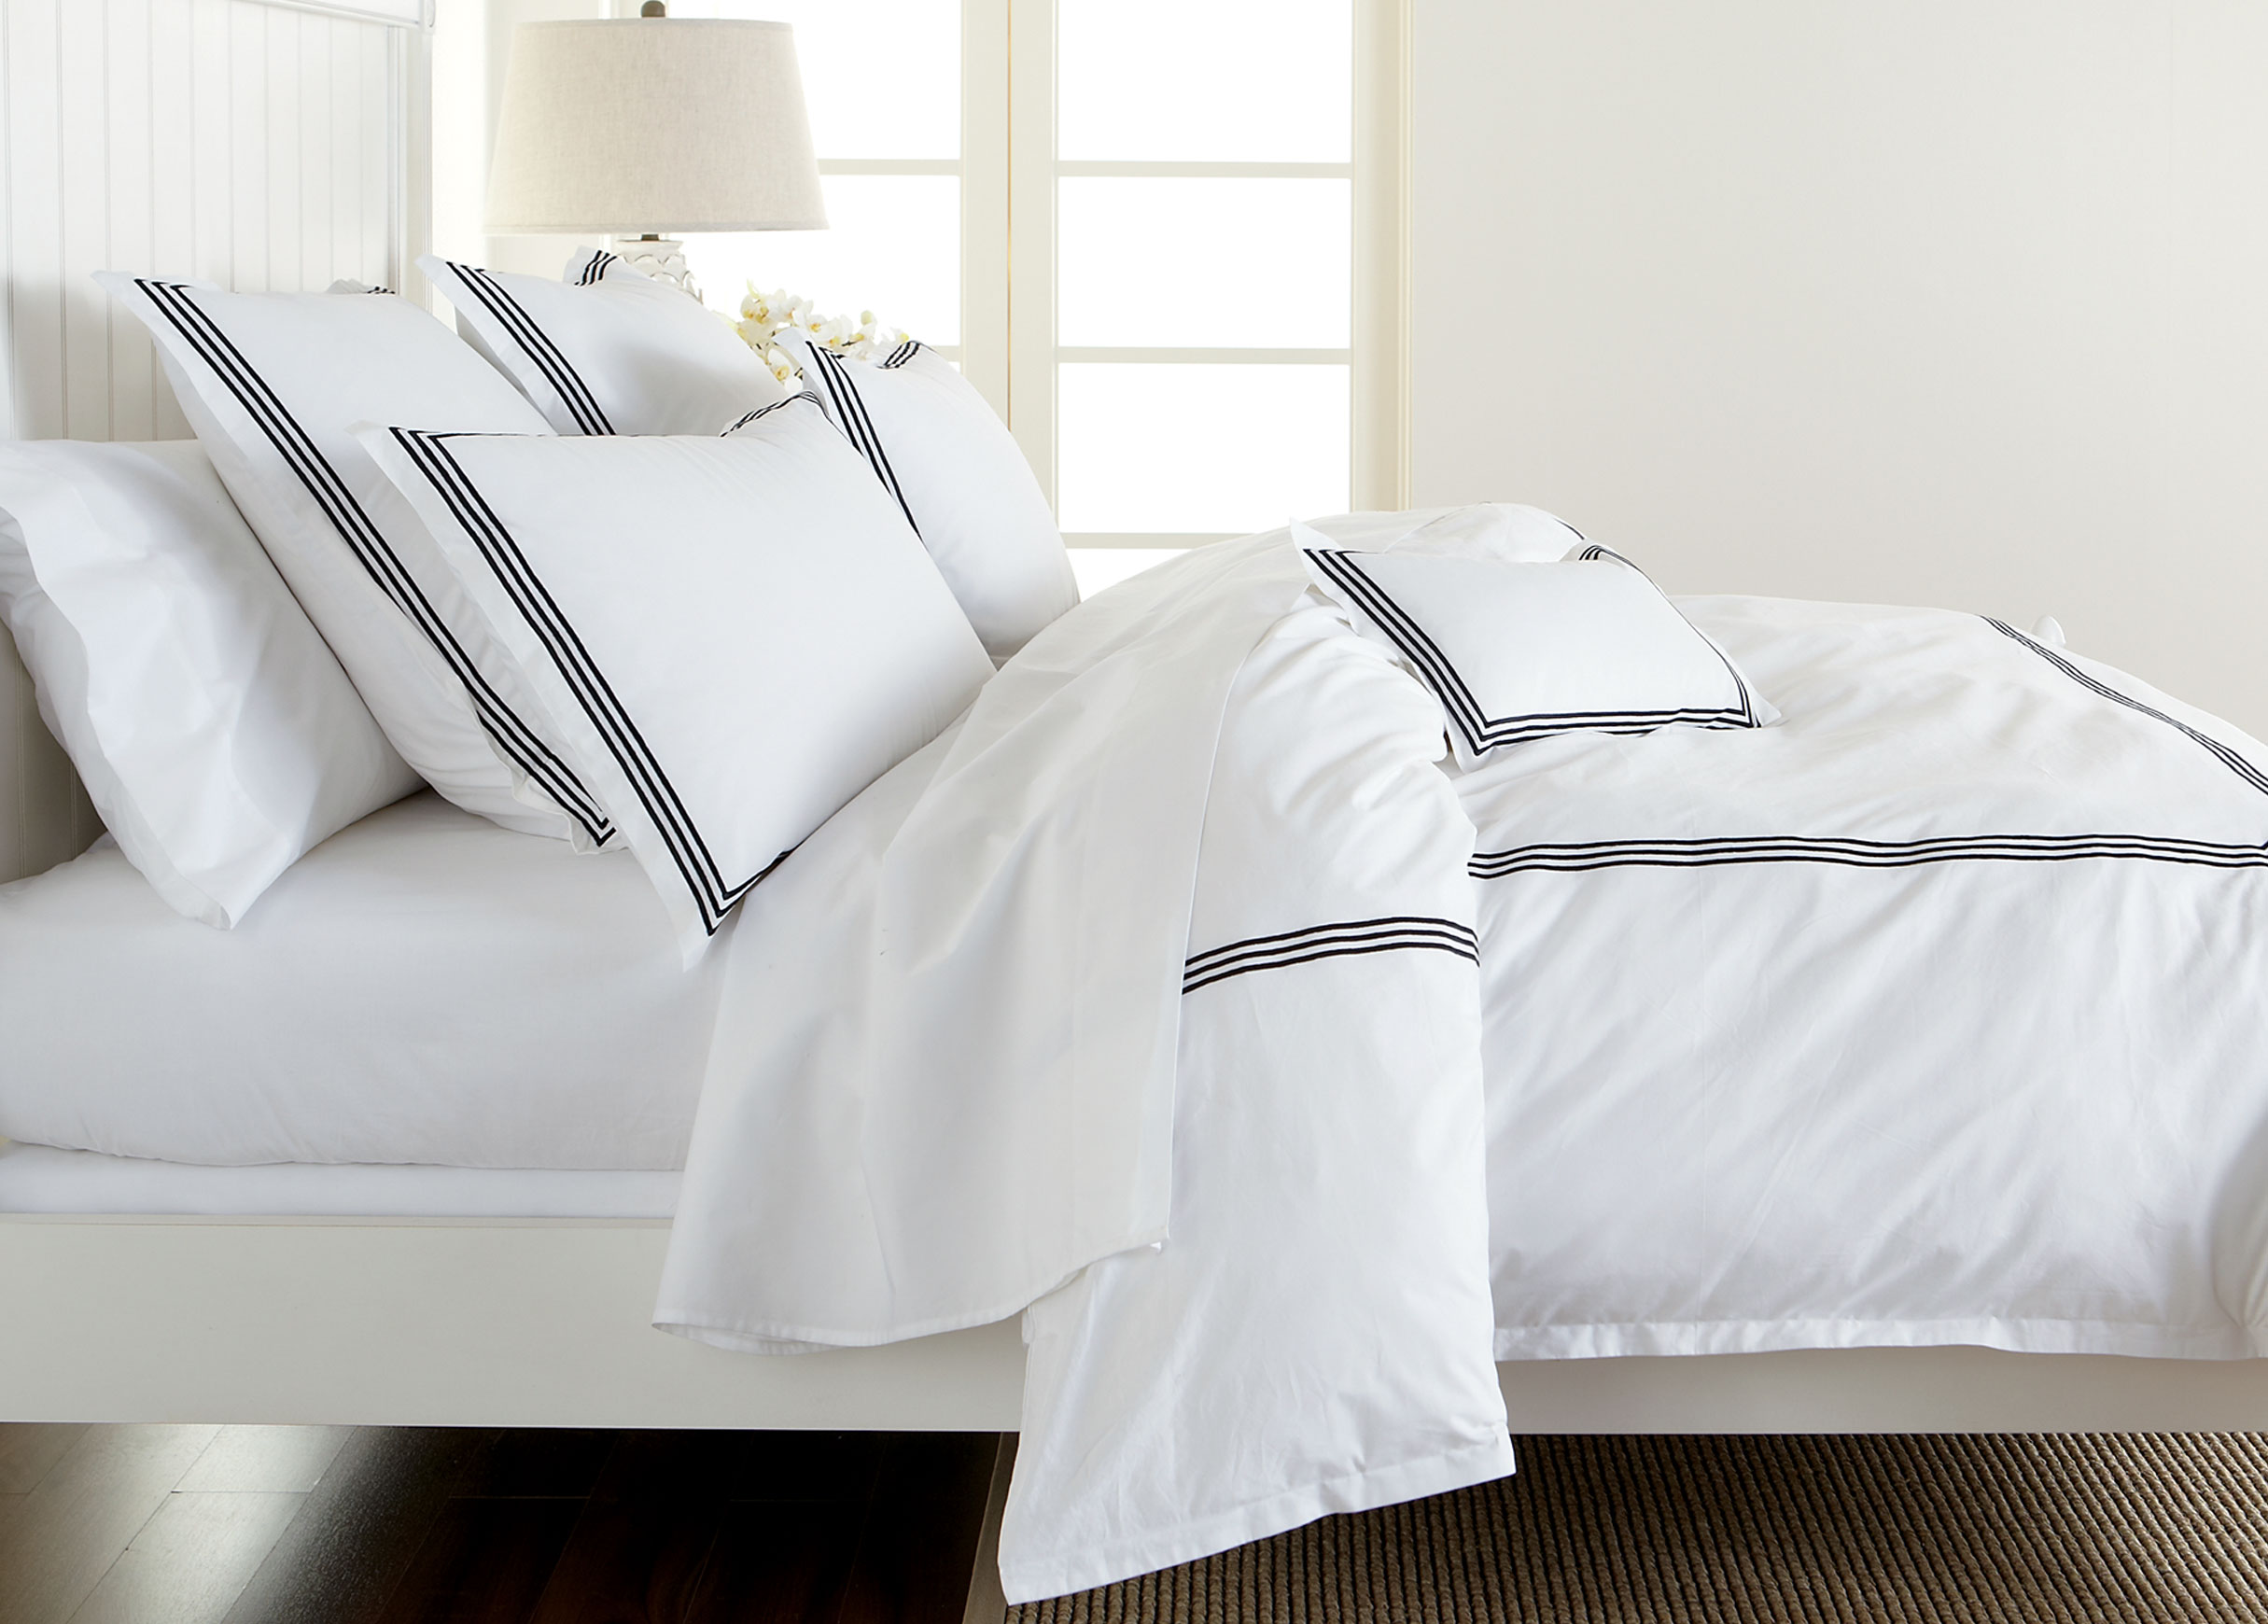 Target Comforters Twin | White Duvet Cover Queen | Textured Duvet Covers